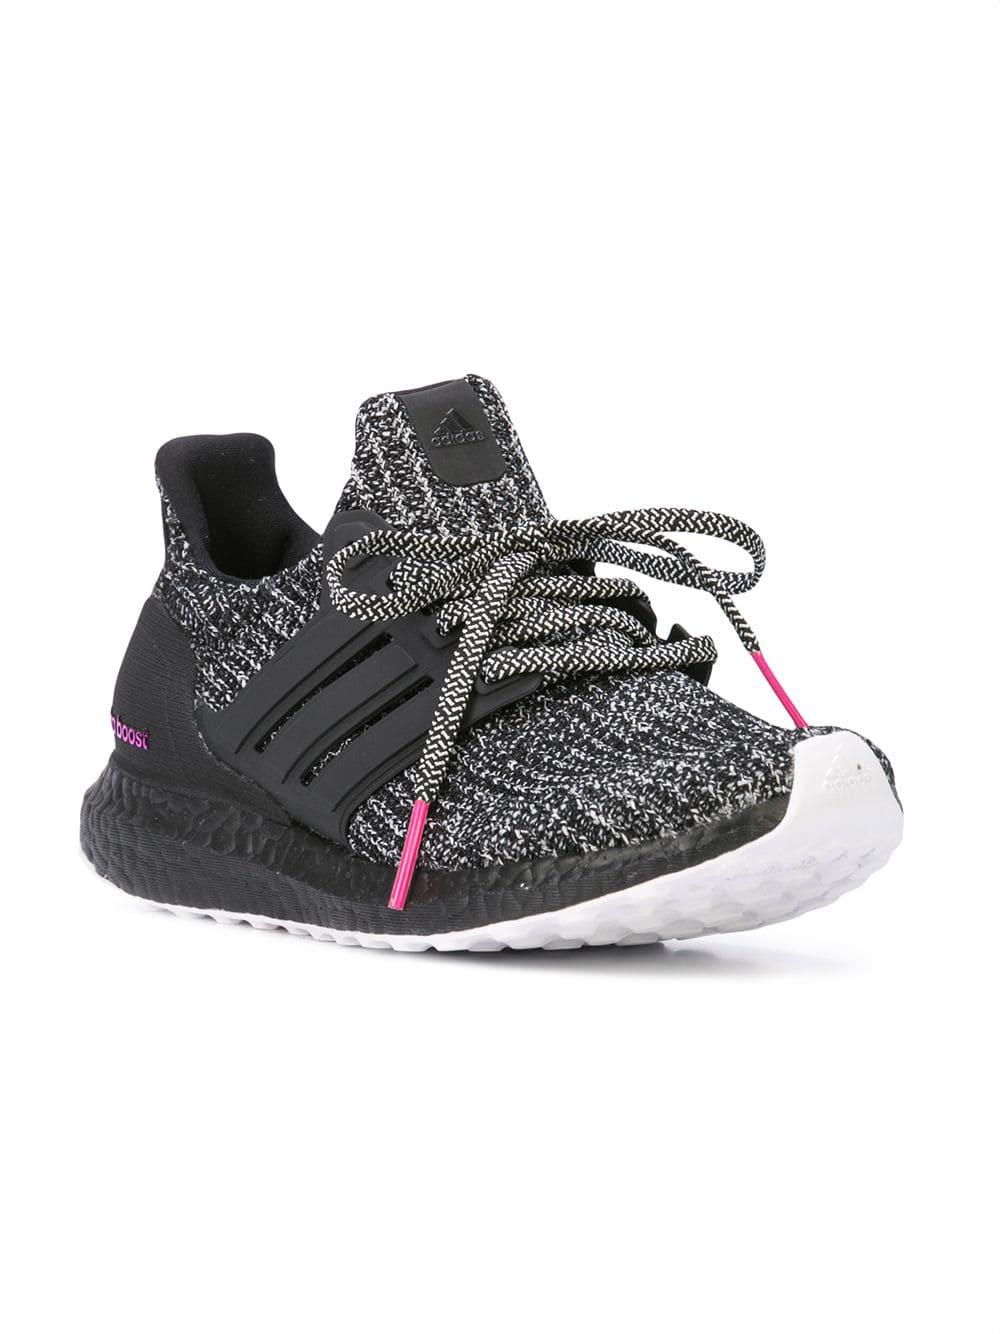 Lyst - adidas Ultraboost 4.0  breast Cancer Awareness  Sneakers in Black  for Men 1c7adf499